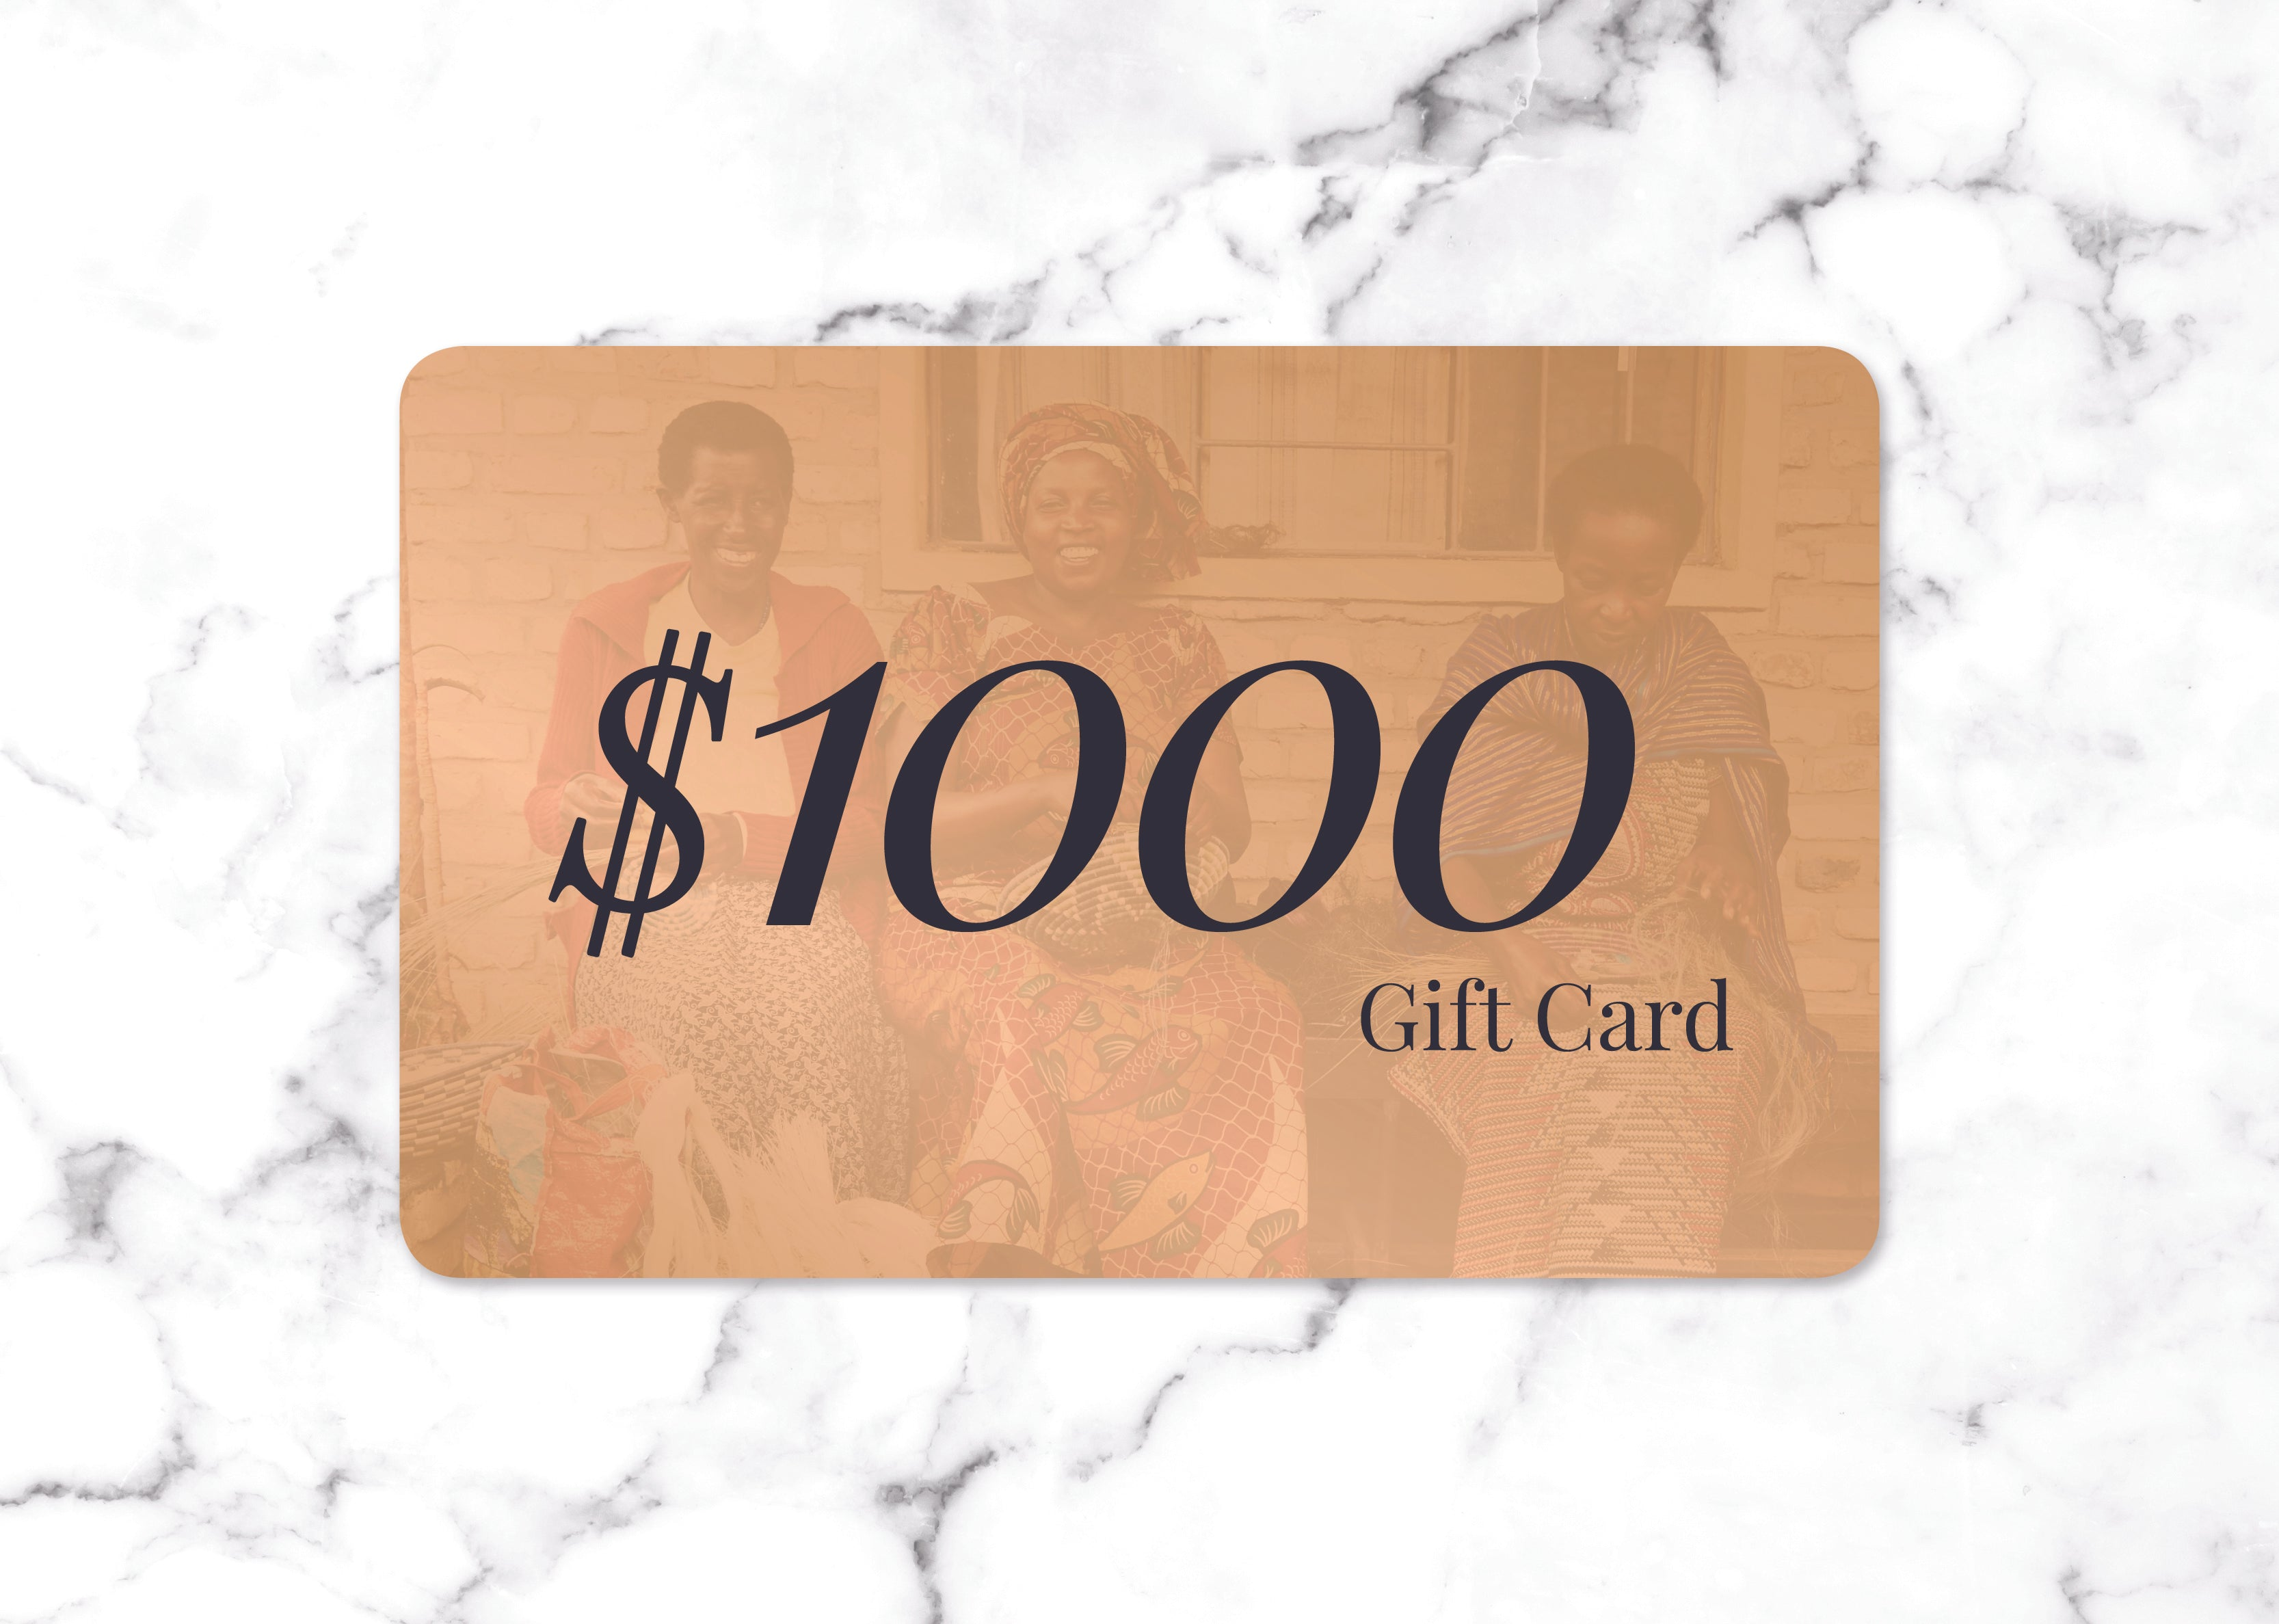 $1000 Gift Card - KAZI - Artisan made high quality home decor and wall art